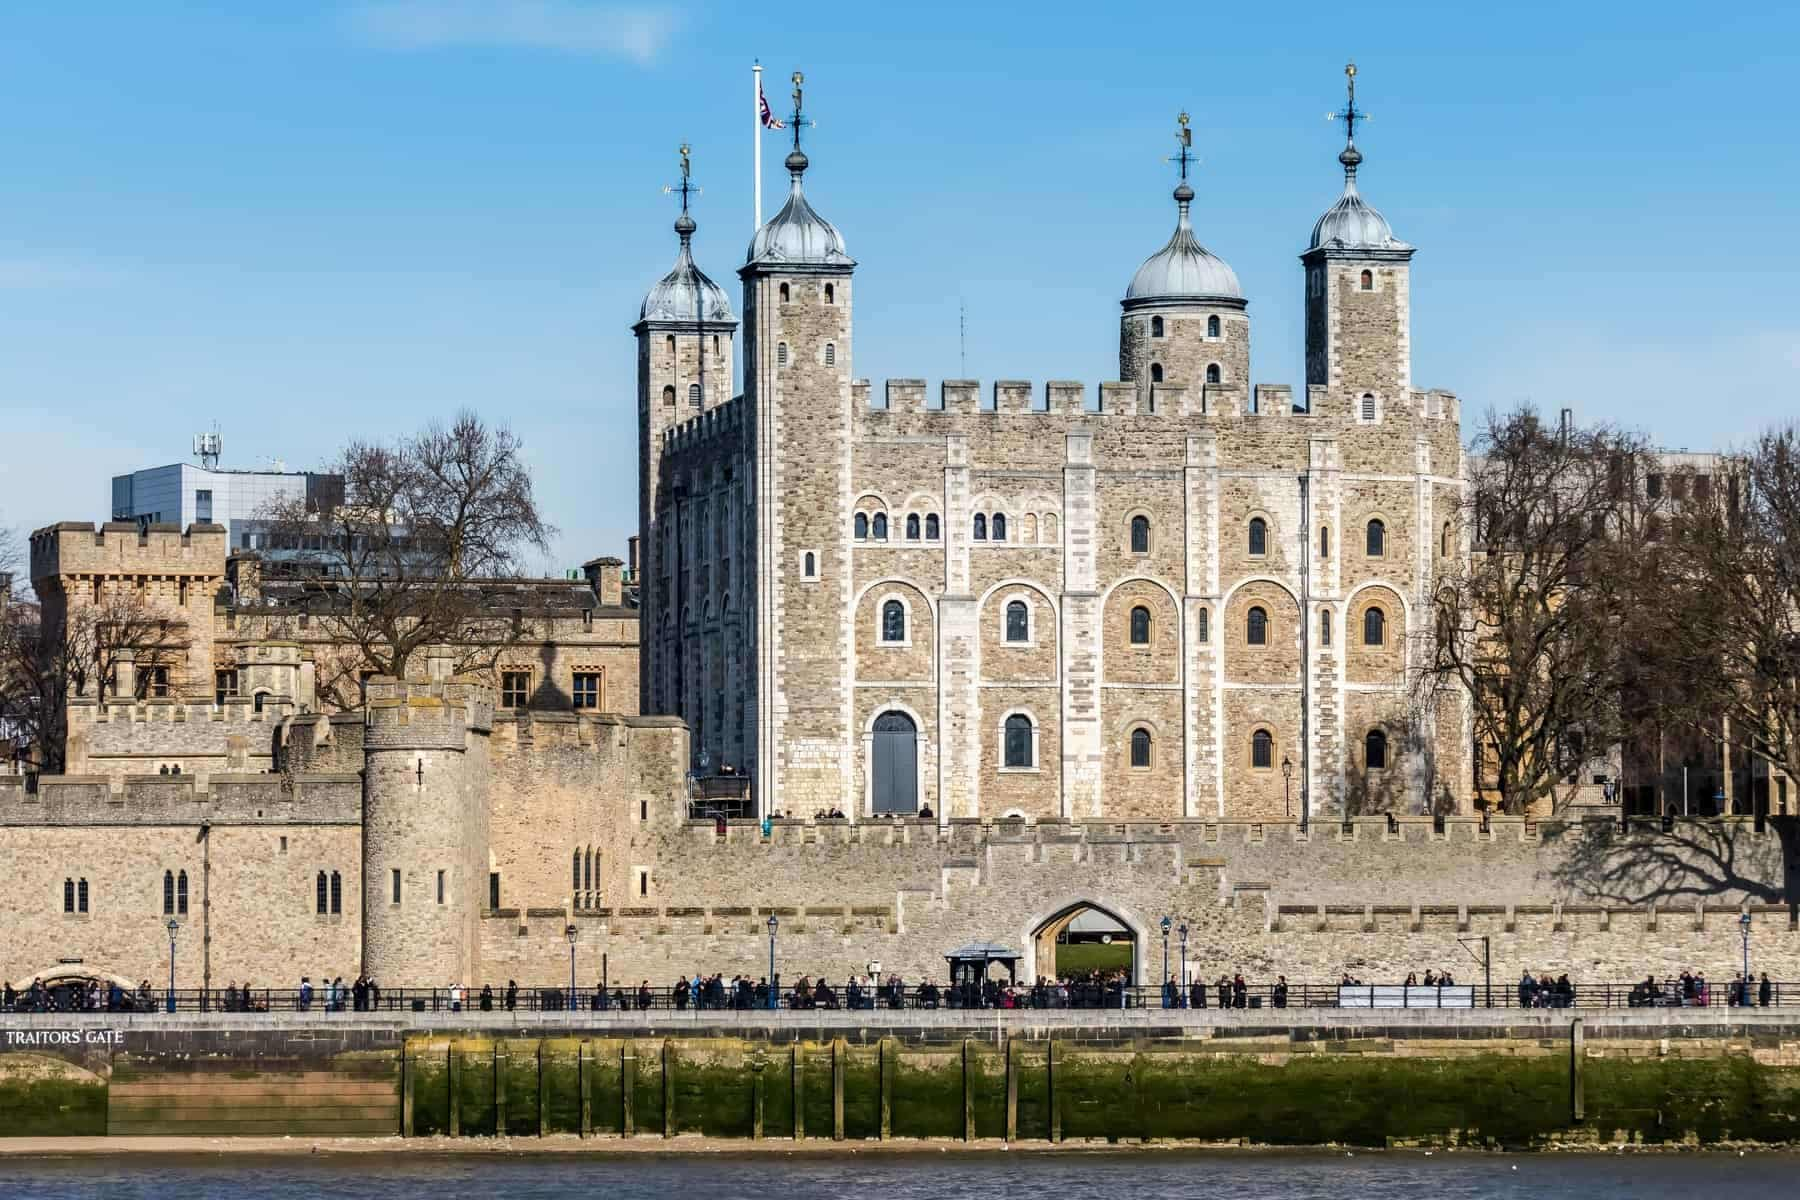 View of the Tower of London on March 7, 2015. Unidentified people.